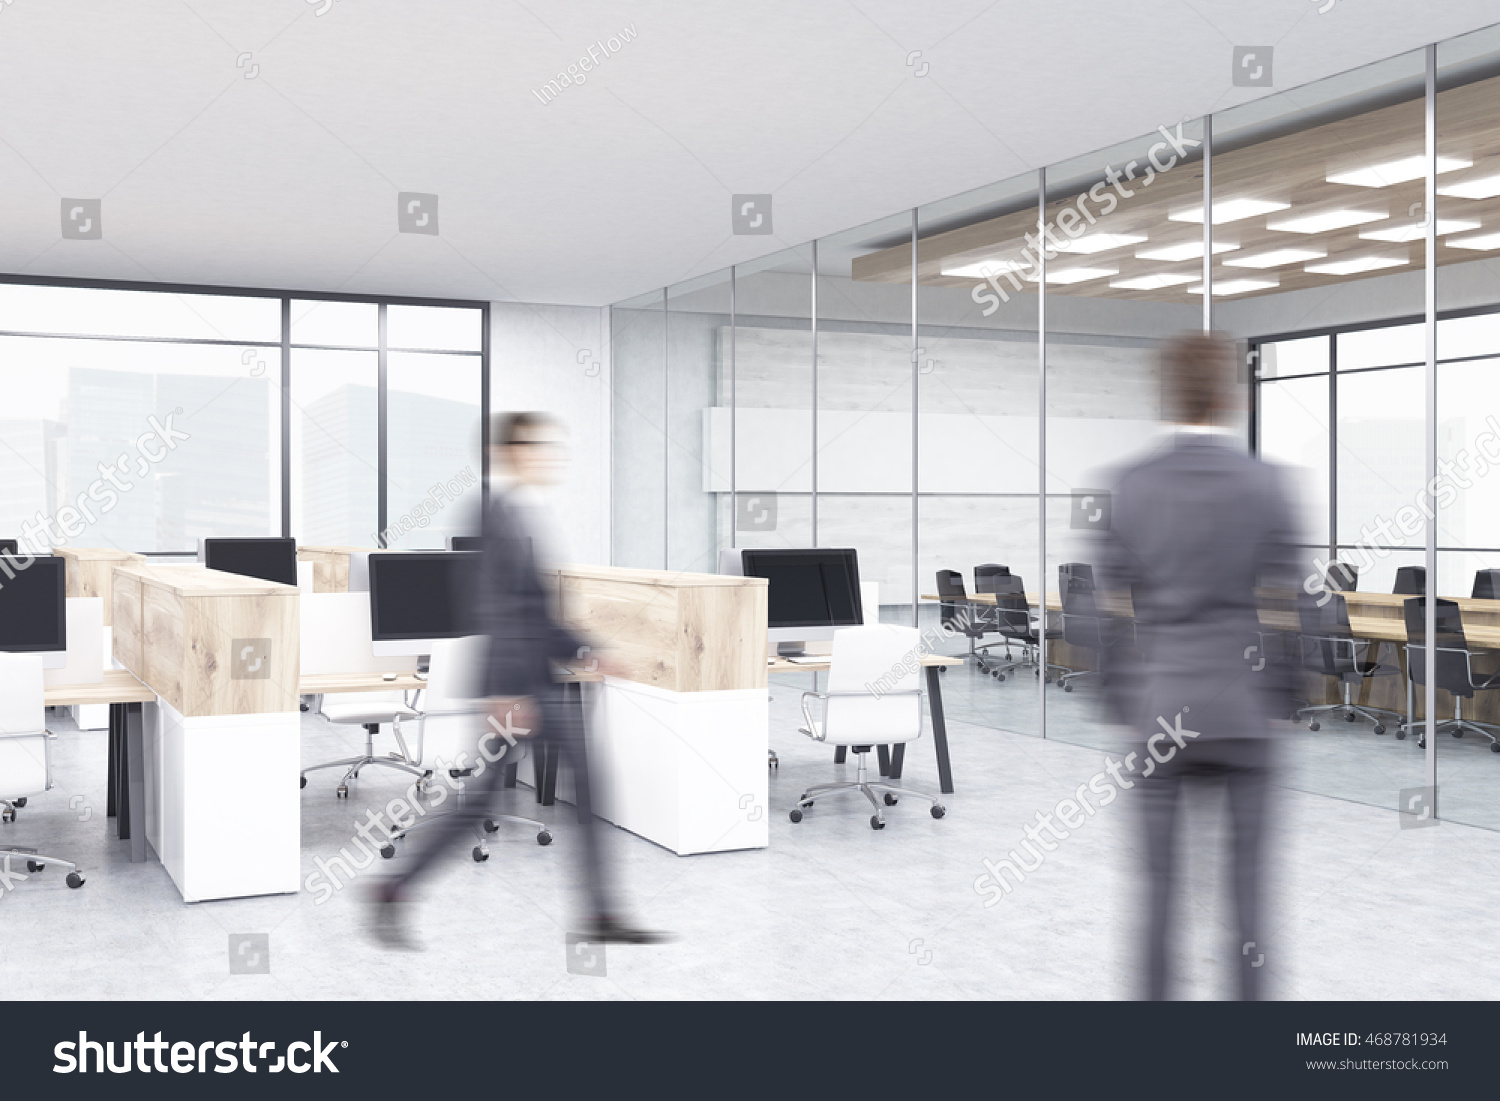 office with cubicles. Two Businessmen In Office With Cubicles And Conference Room Background. Concept Of Corporate Work E